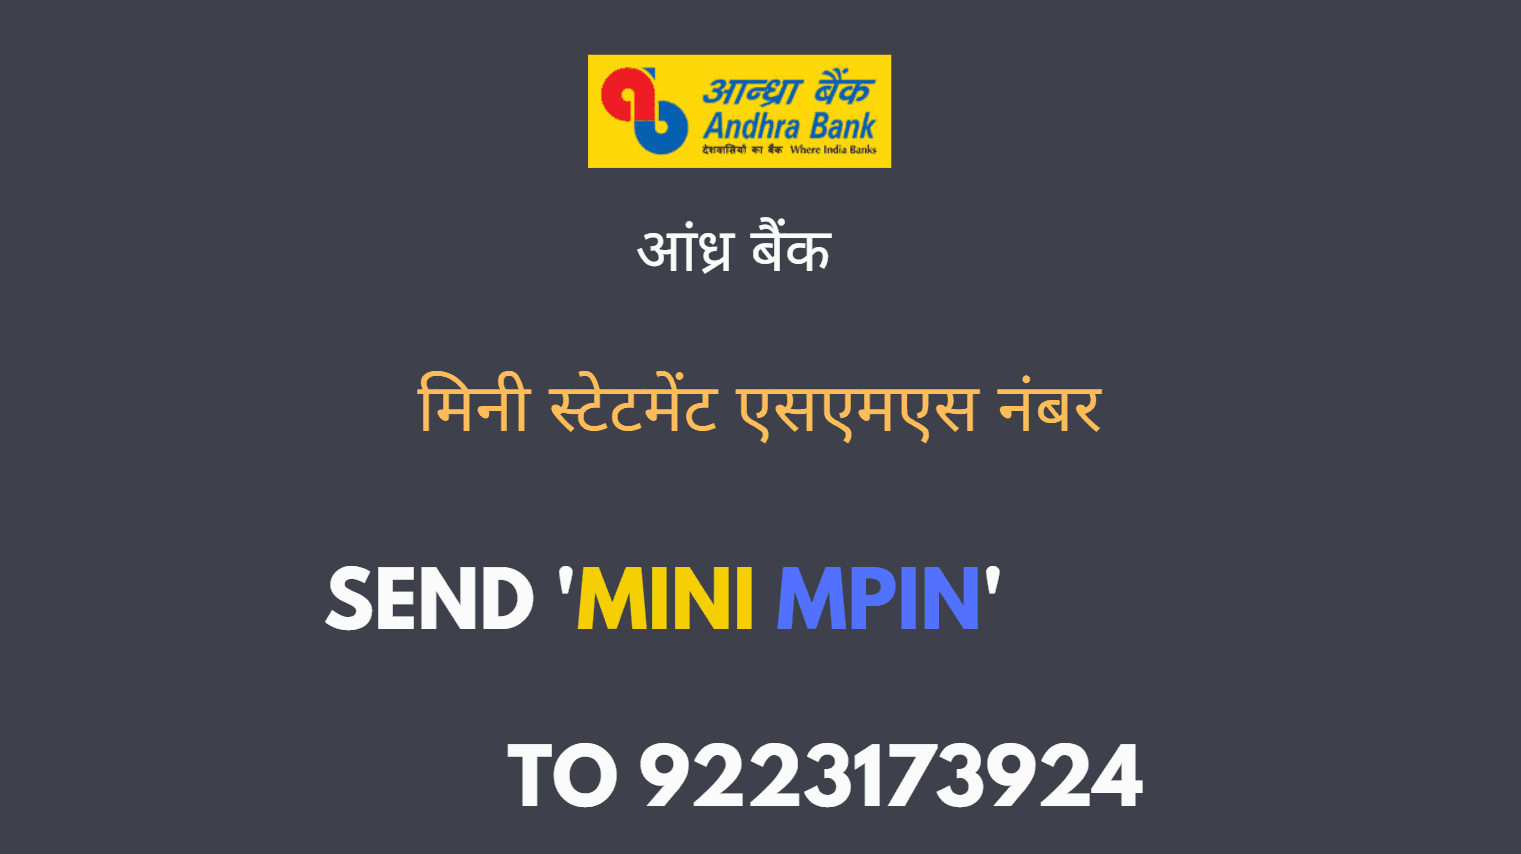 andhra bank mini statement sms number